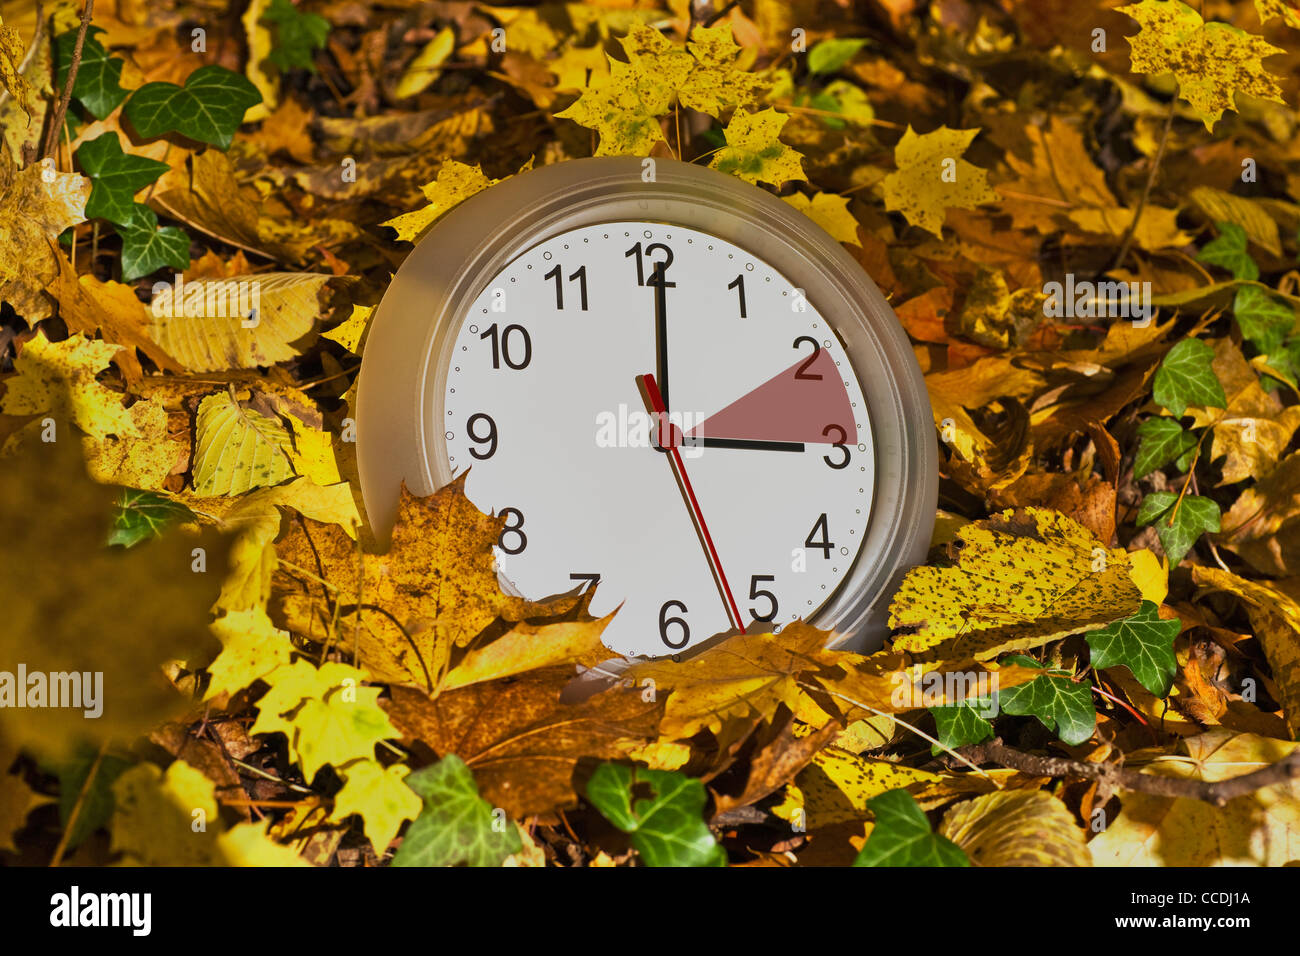 A wall clock in the colorful leaves. The clock face has a red marker between two and three. Stock Photo